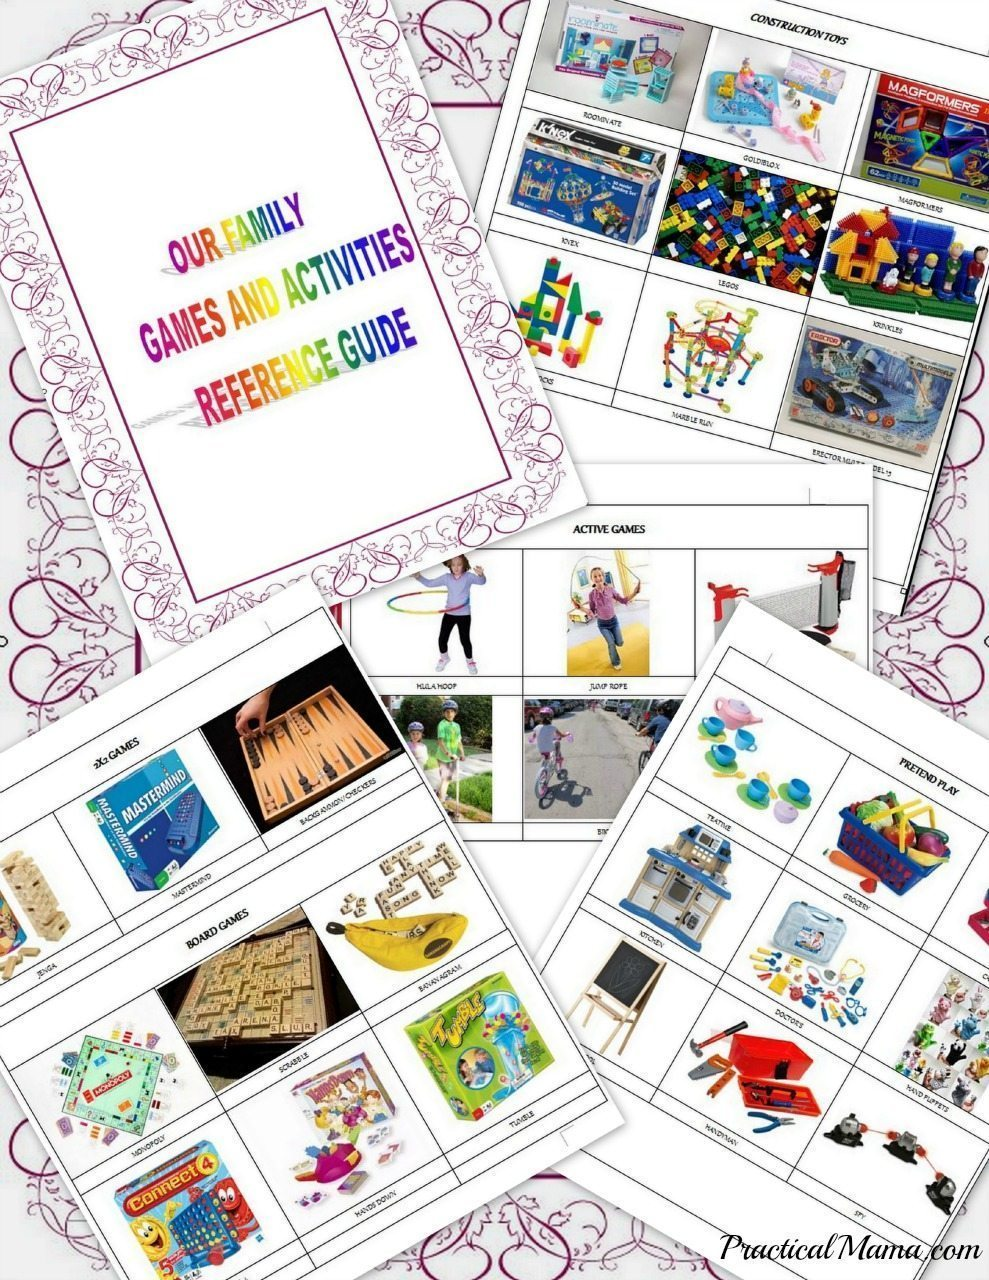 Kids' games and activities quick reference guide